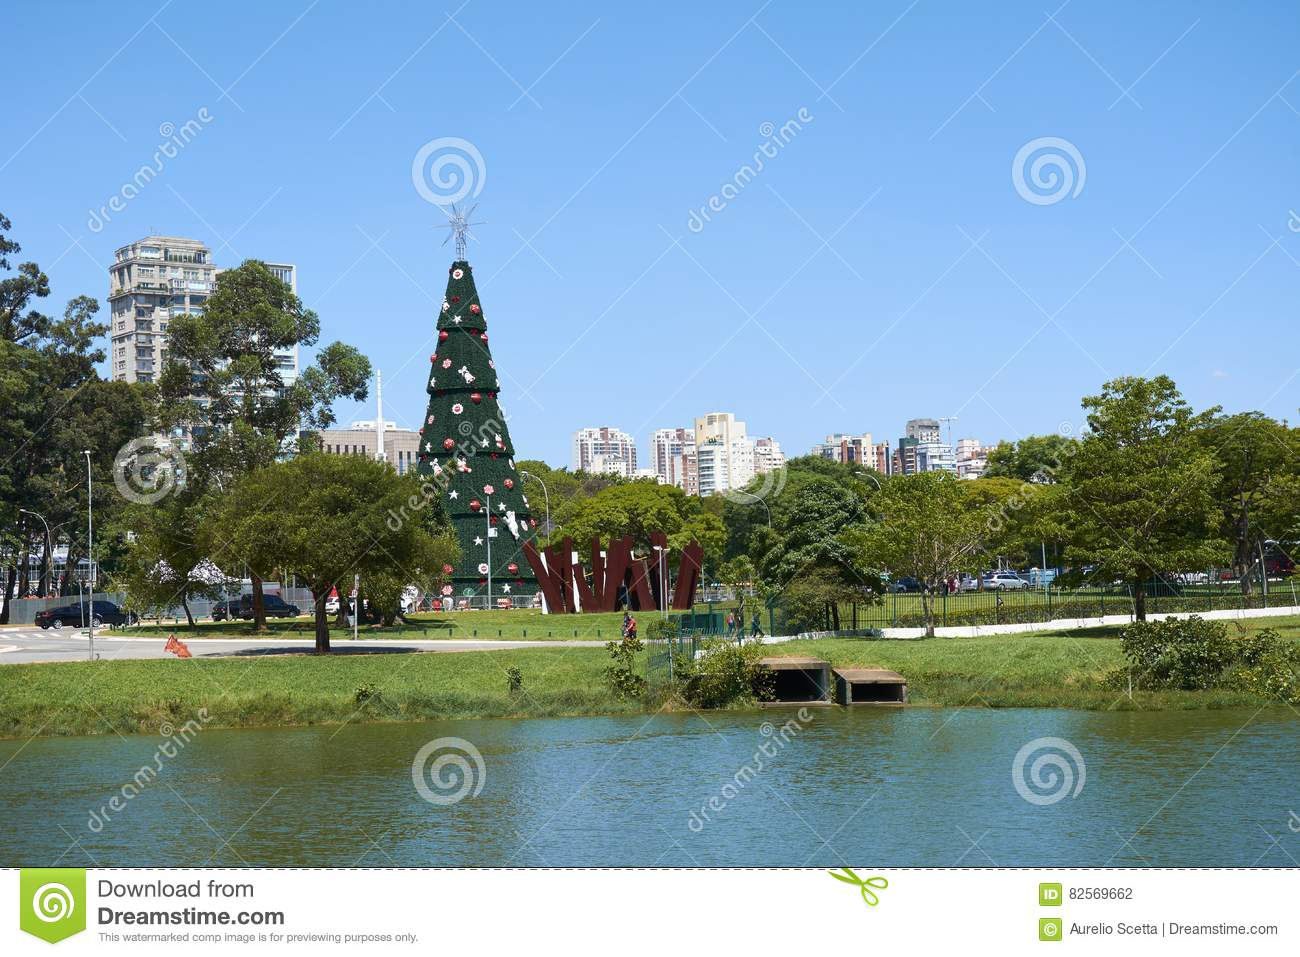 sao paulo brazil december 6 2016traditional christmas tree in ibirapuera being the 15th year of the attraction in the south zone of the city of sao - Christmas Traditions In Brazil